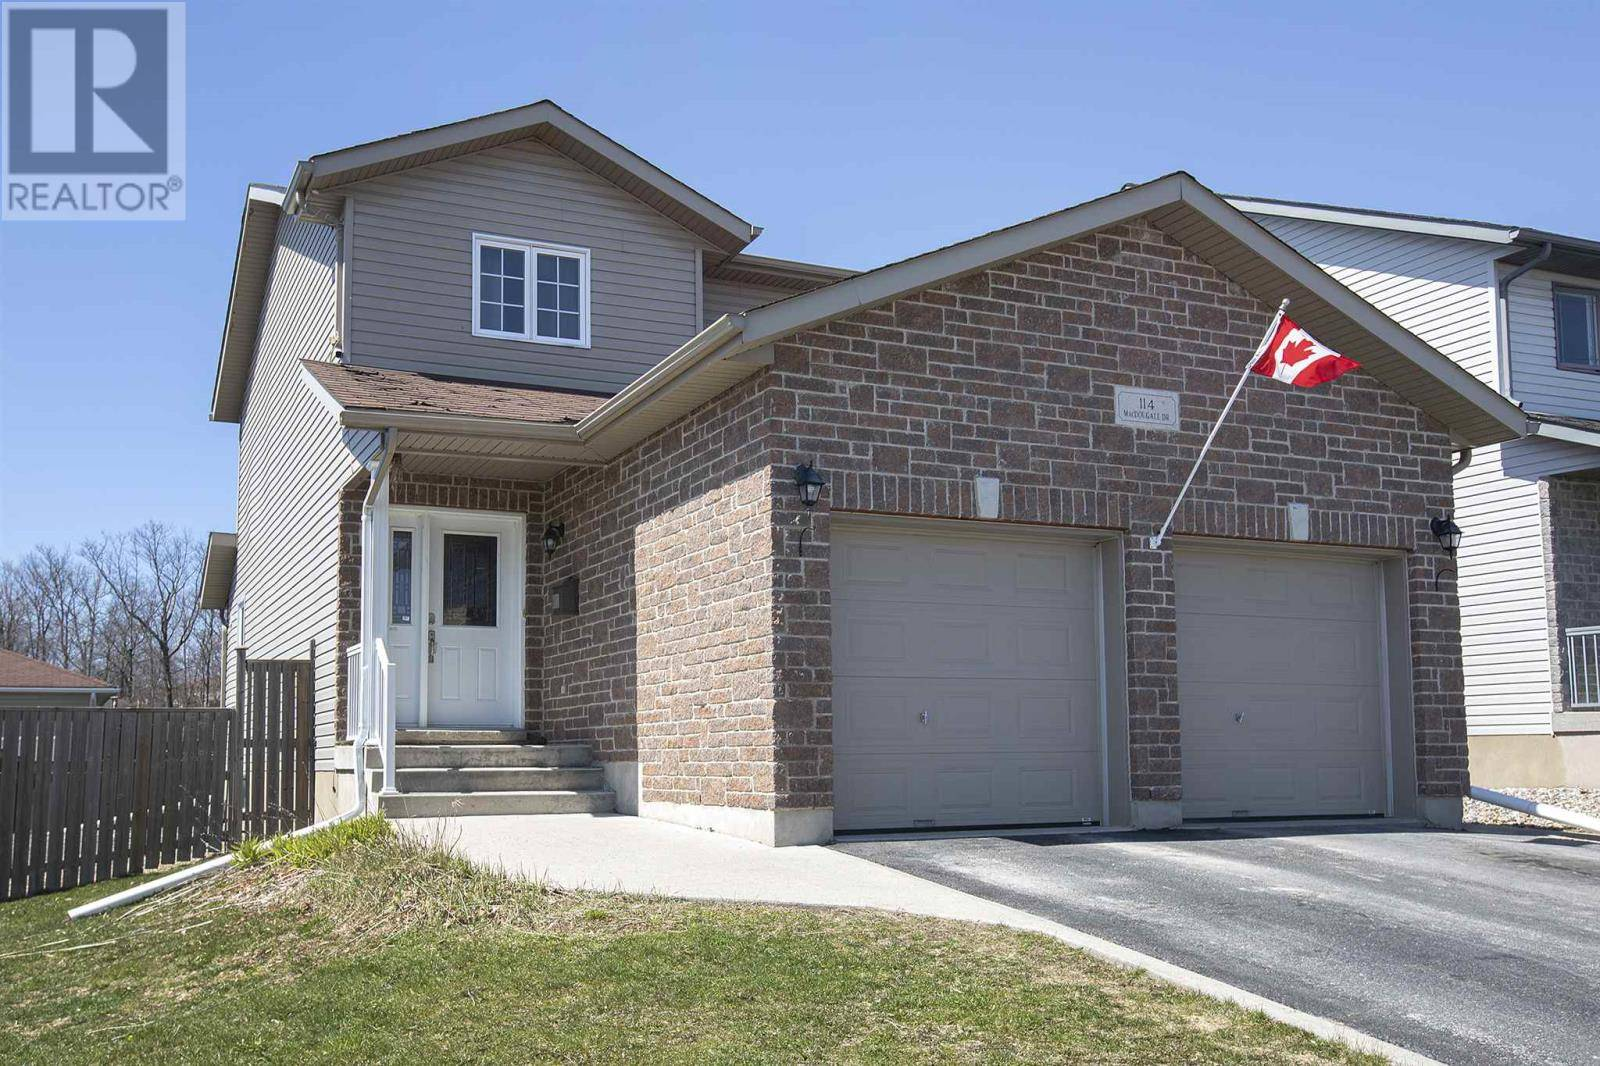 House for sale at 114 Macdougall Dr Amherstview Ontario - MLS: K20002040